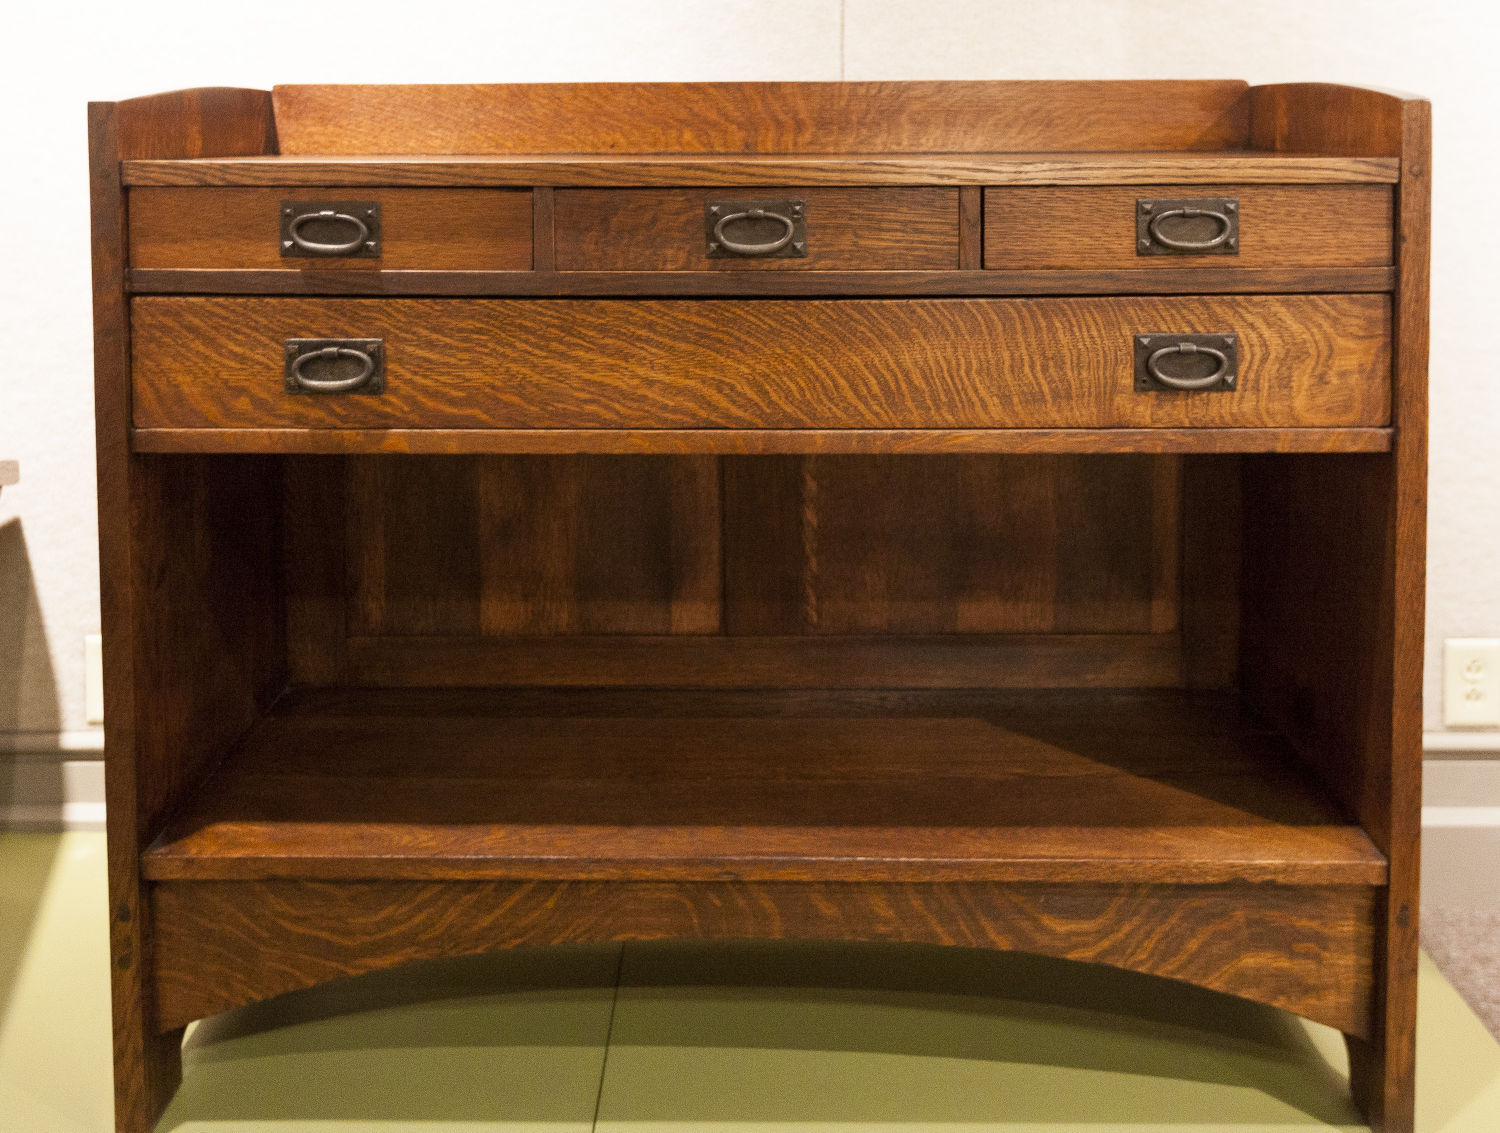 Heritage Center Exhibit Spotlights Furniture That Was Built To Last